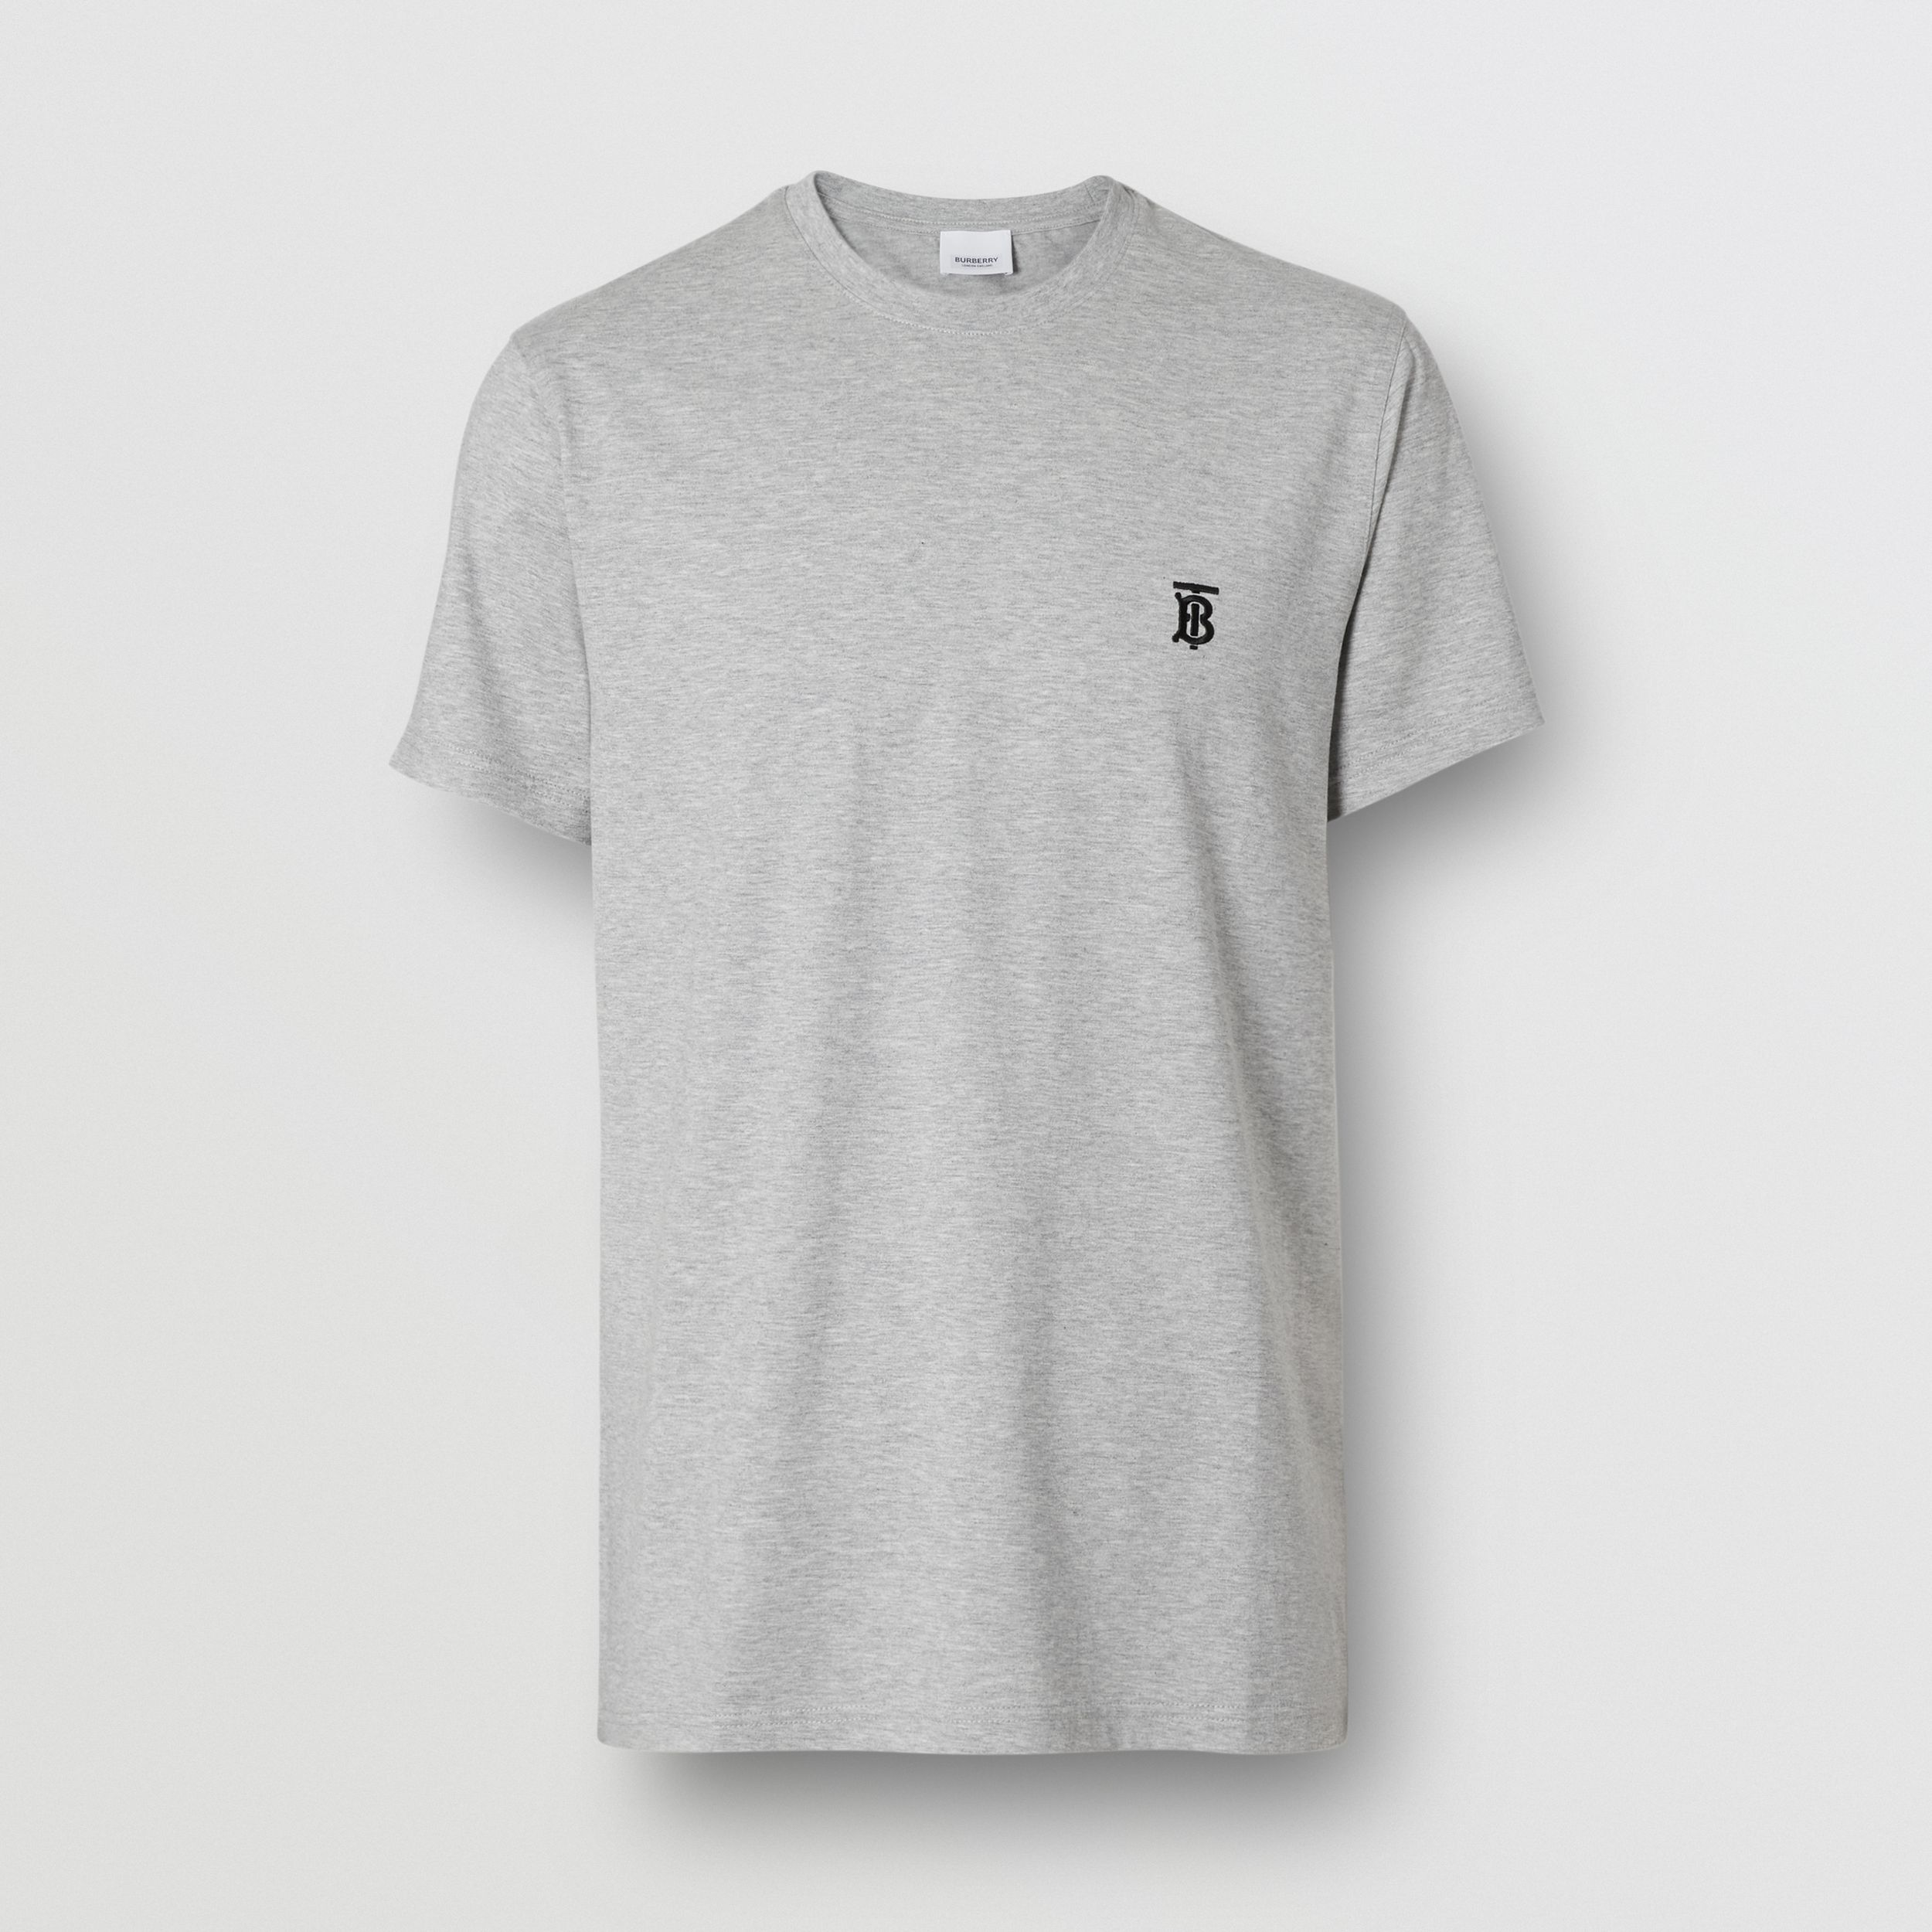 Monogram Motif Cotton T-shirt in Pale Grey Melange - Men | Burberry Australia - 4